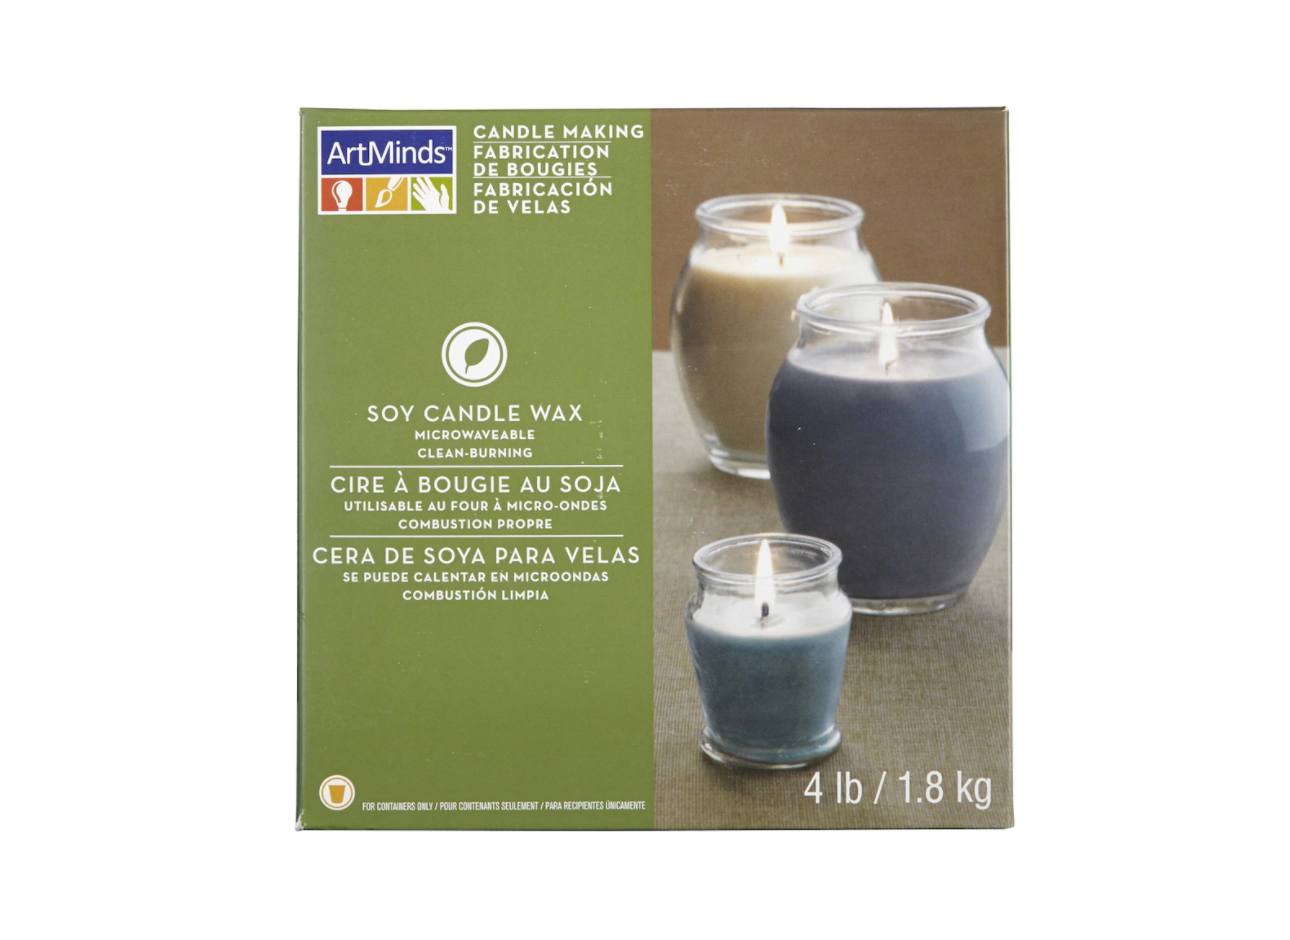 ArtMinds Candle Making Soy Wax